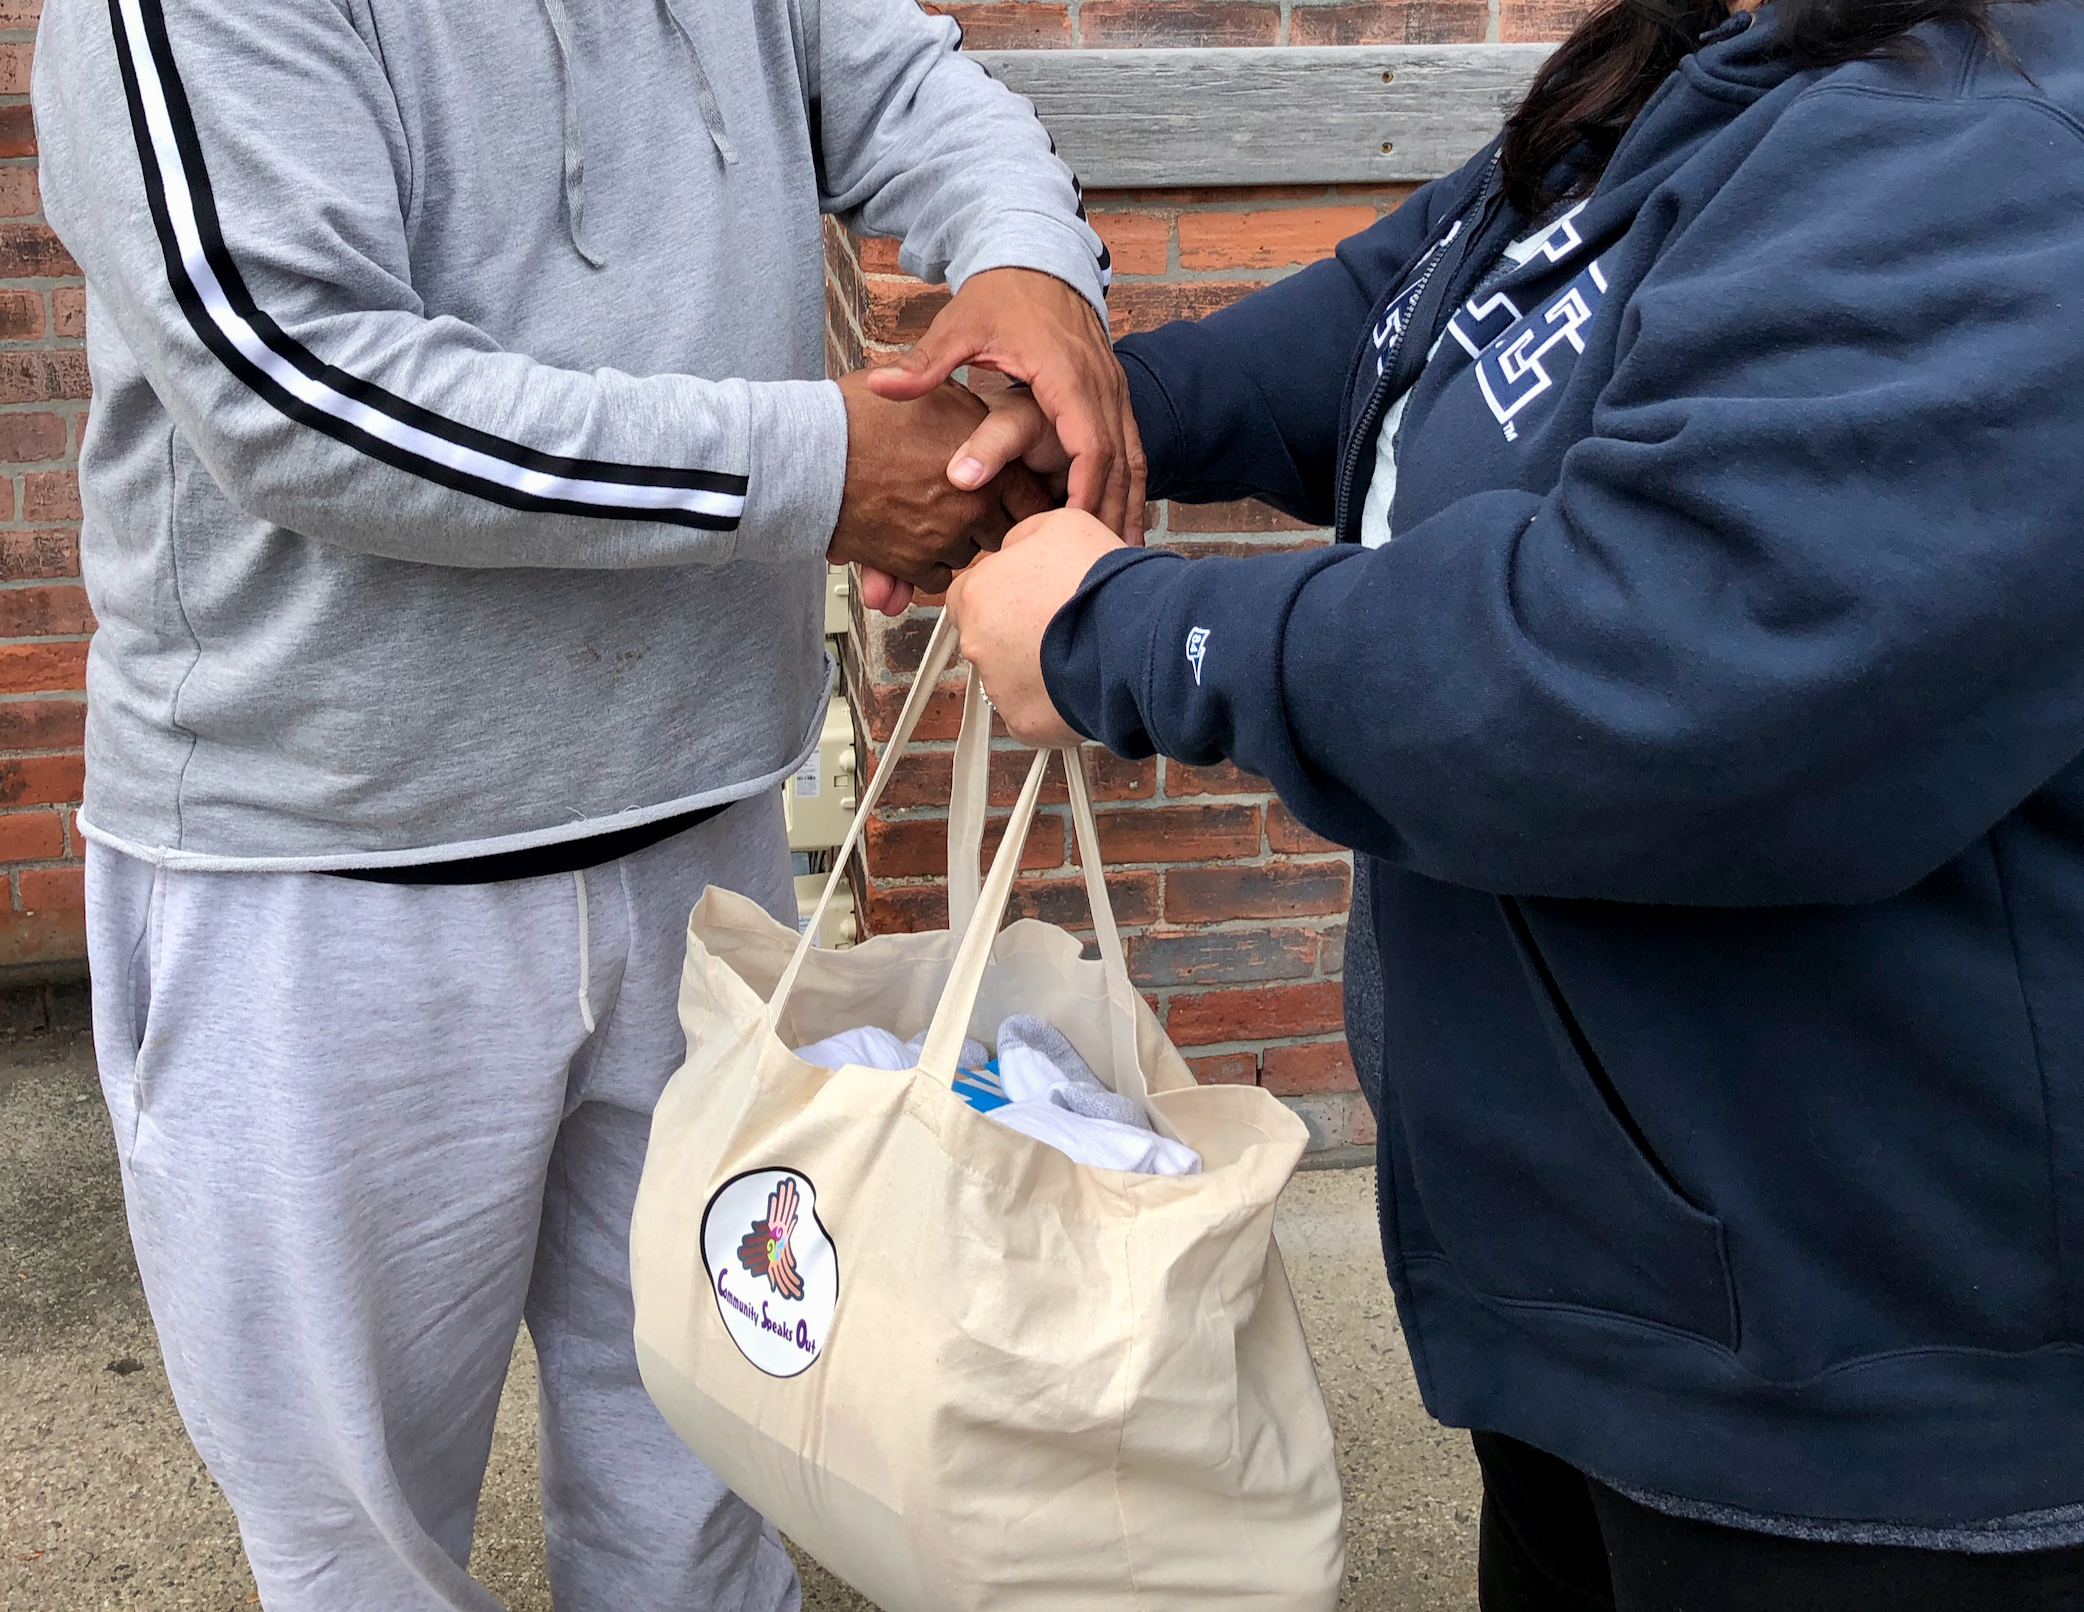 U.S. Army veteran in recovery receives a care-bag from Community Speaks Out volunteer.